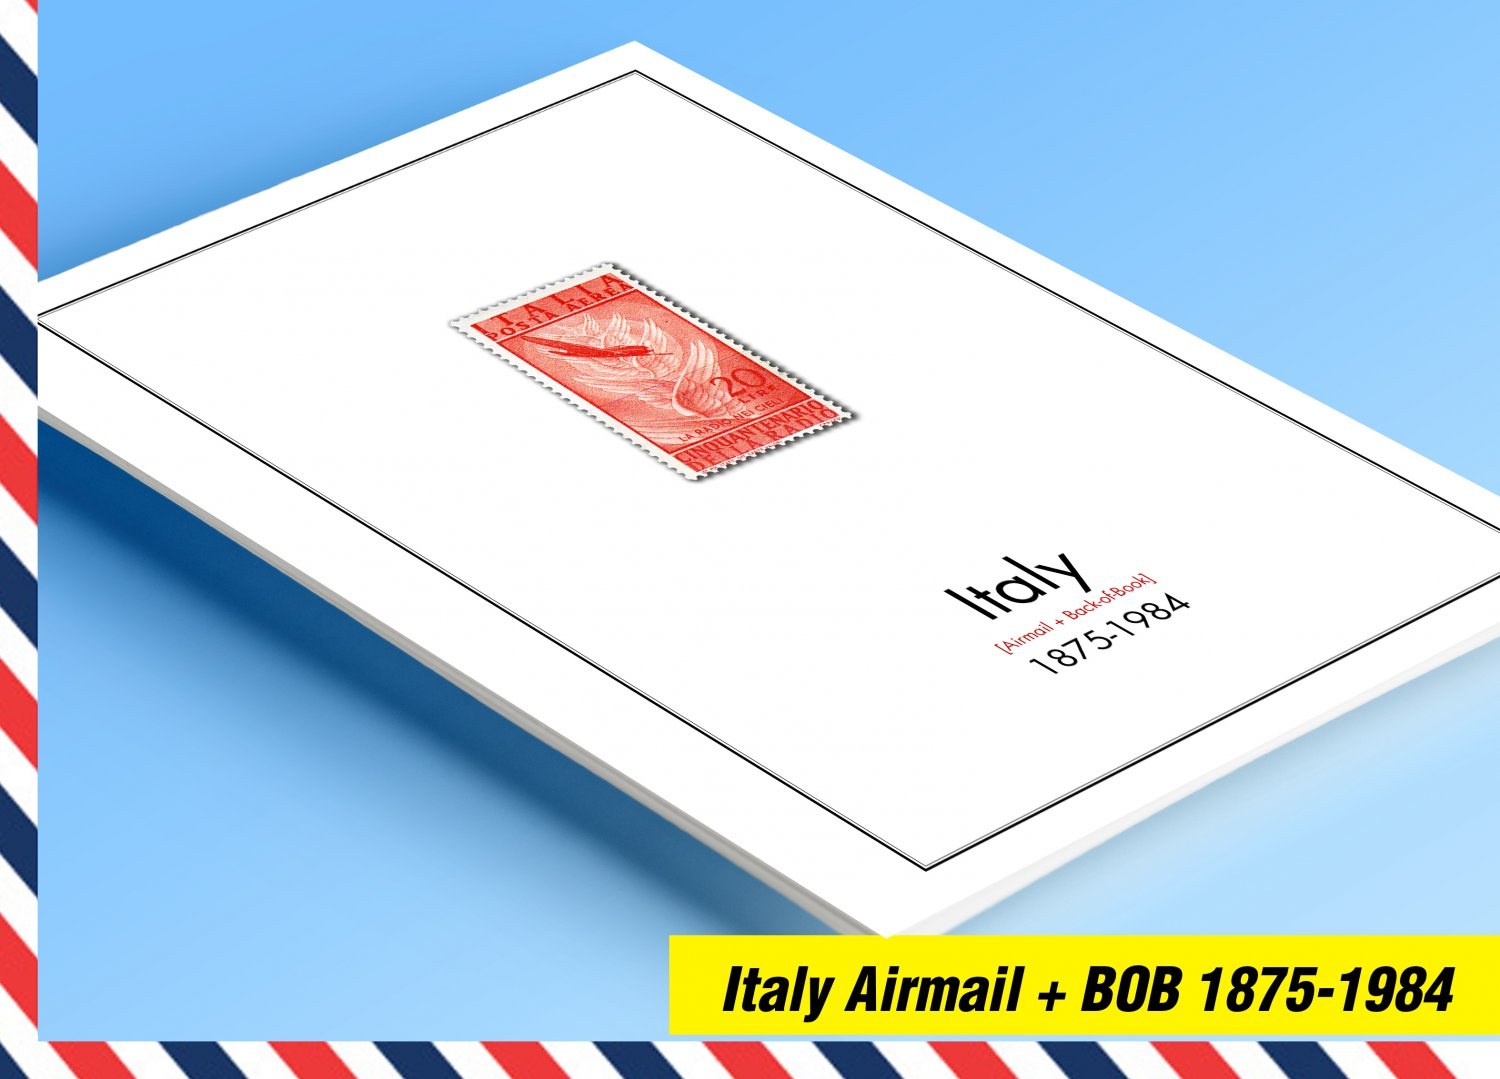 COLOR PRINTED ITALY AIRMAIL + B.O.B. 1875-1984 STAMP ALBUM PAGES (44 illustrated pages)